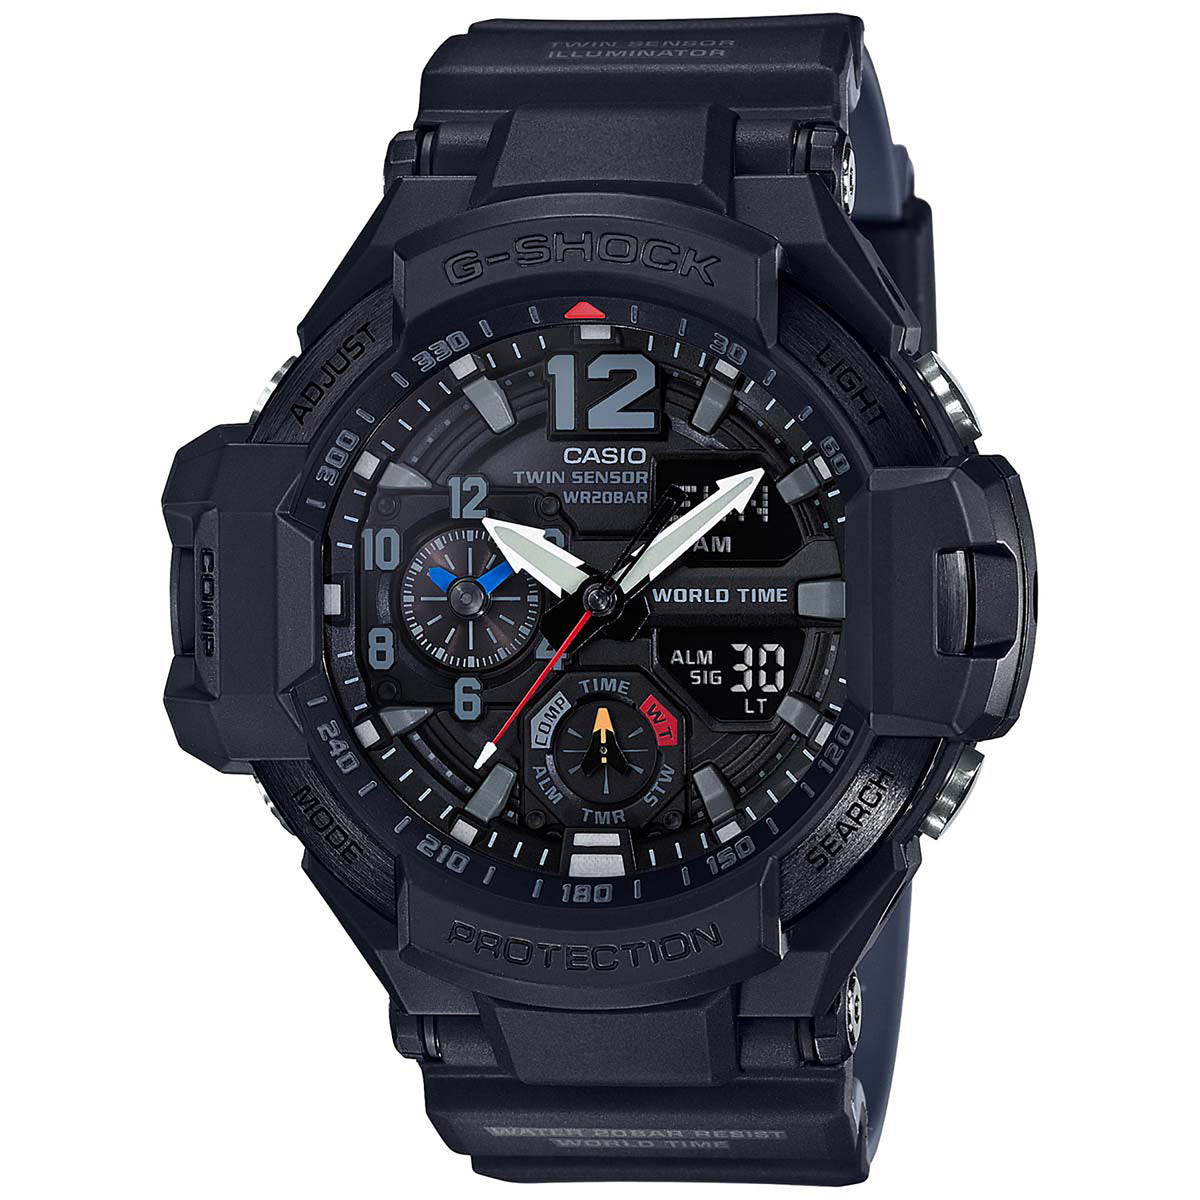 G-Shock: GA-1100-1A1 Master of G Gravitymaster Watch - Black